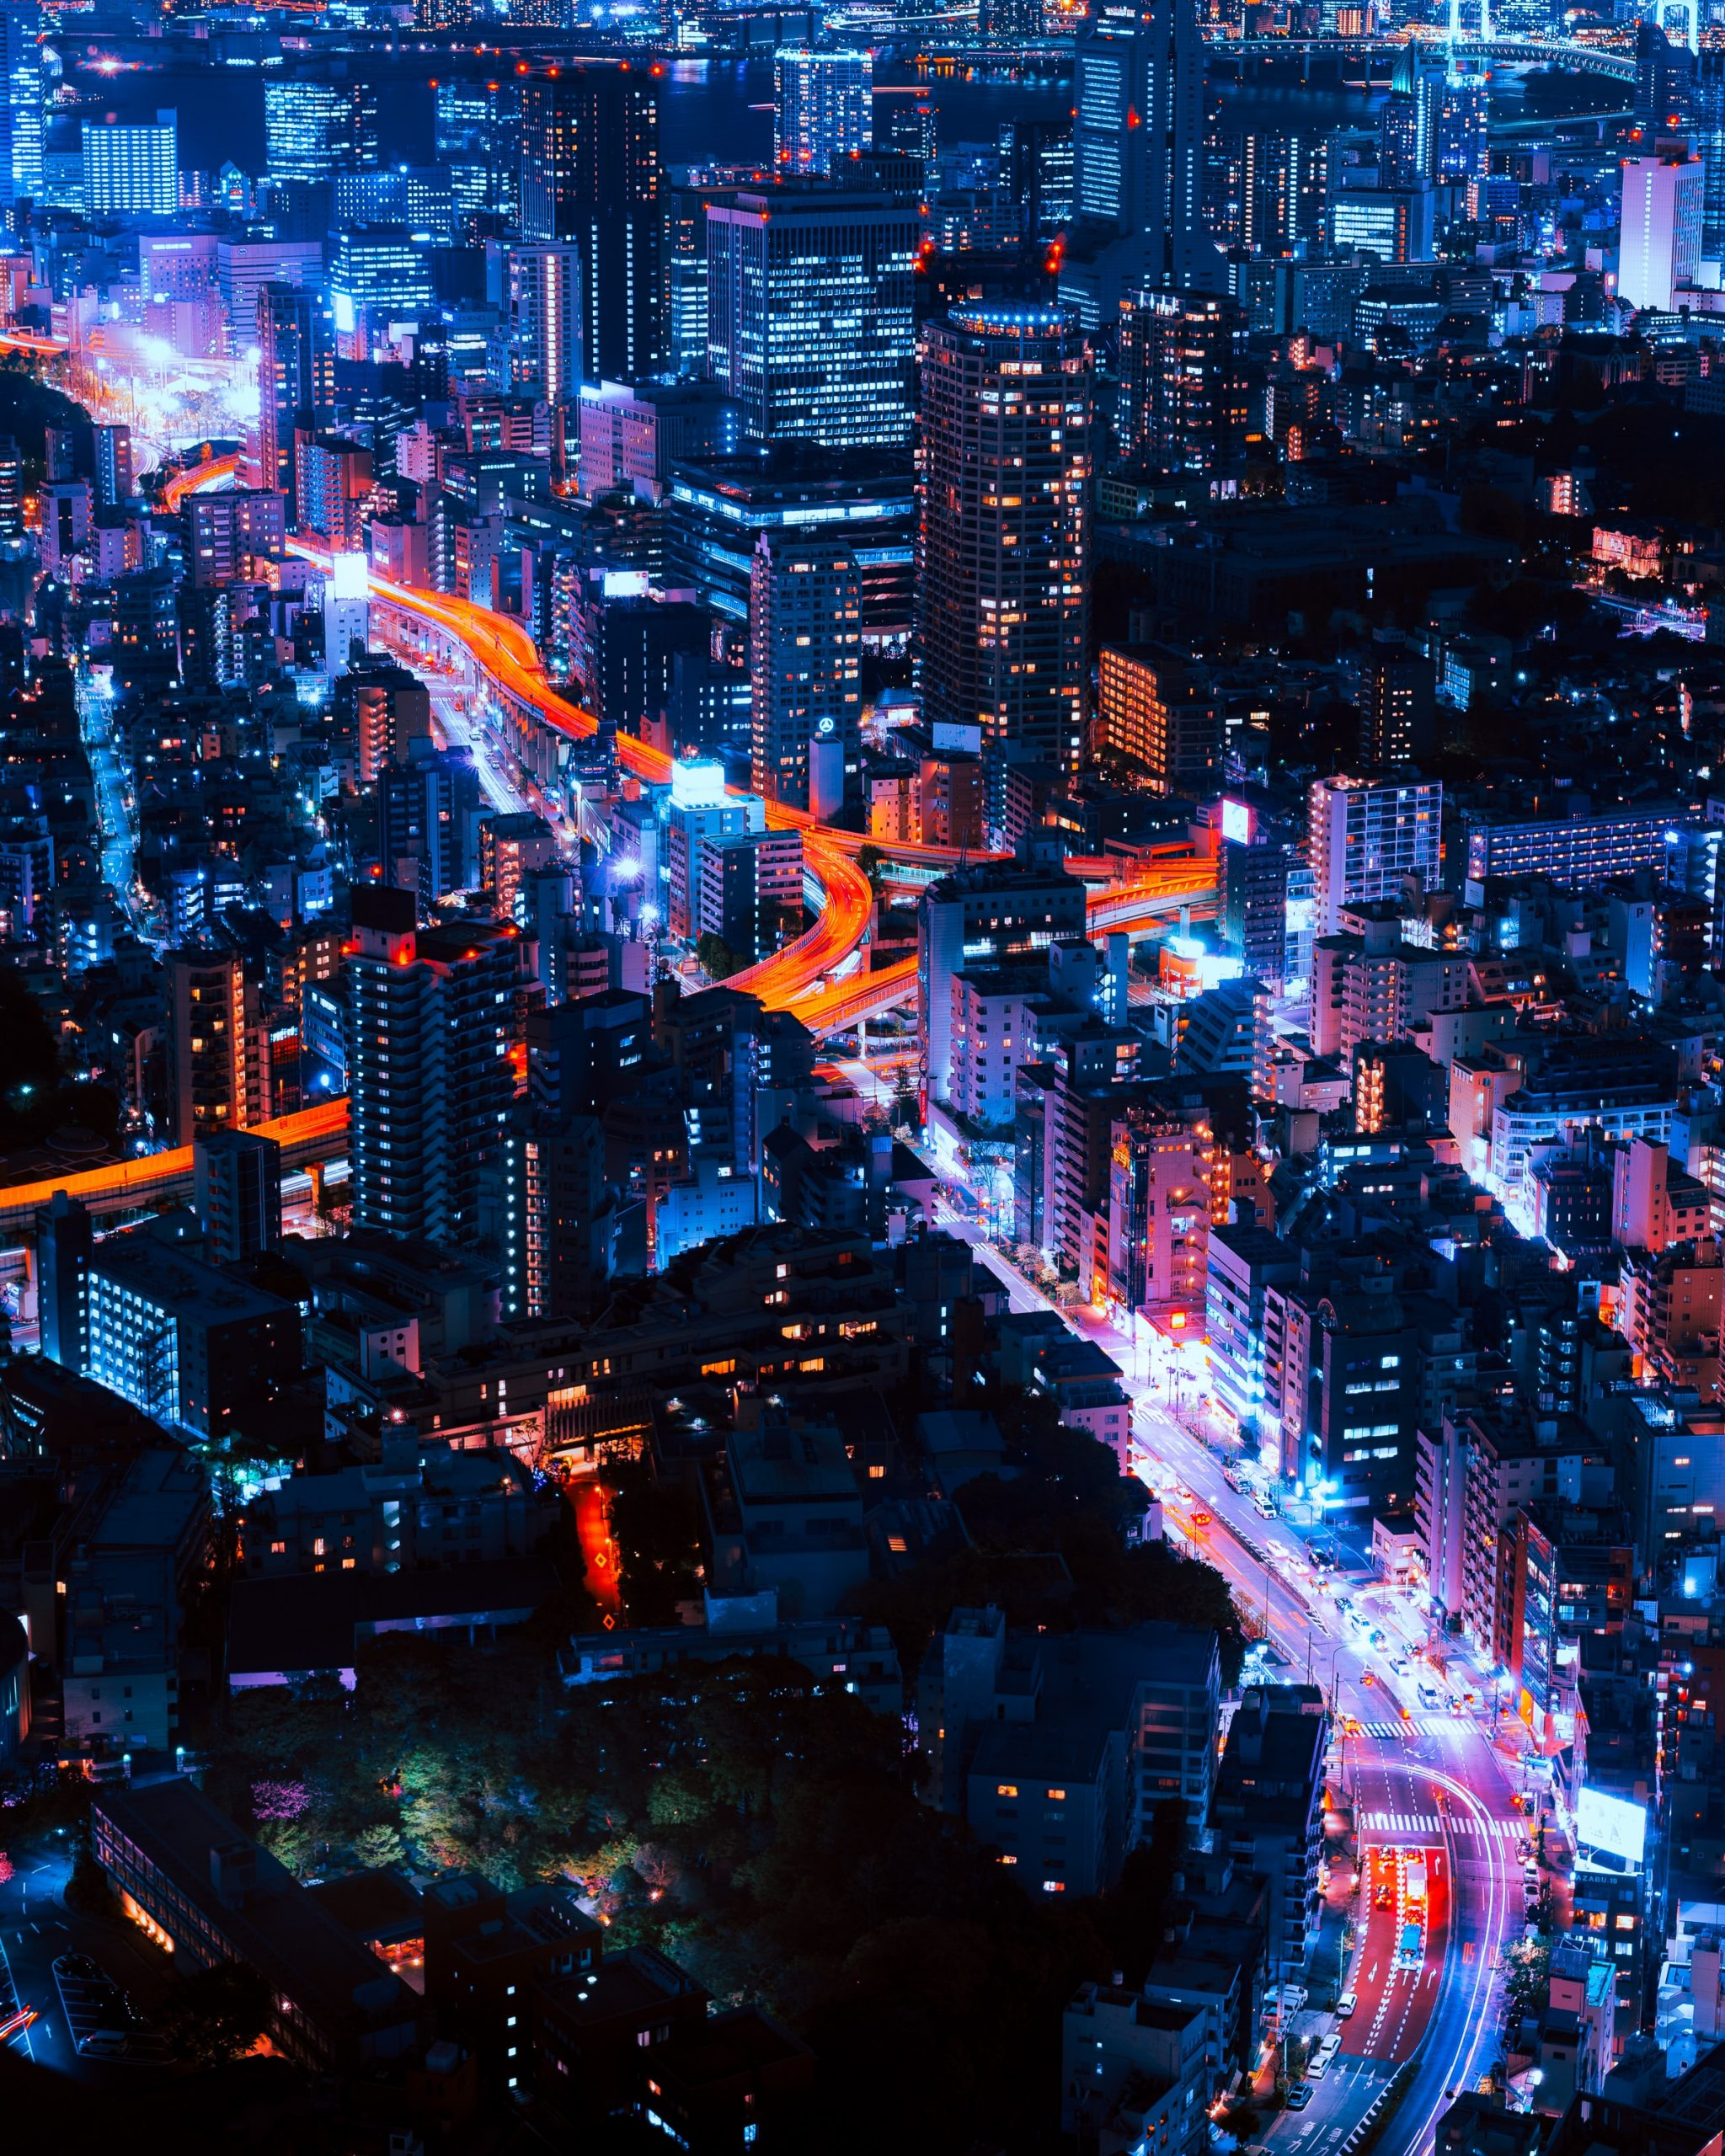 wallpaper Timelapse photography of vehicles and buildings